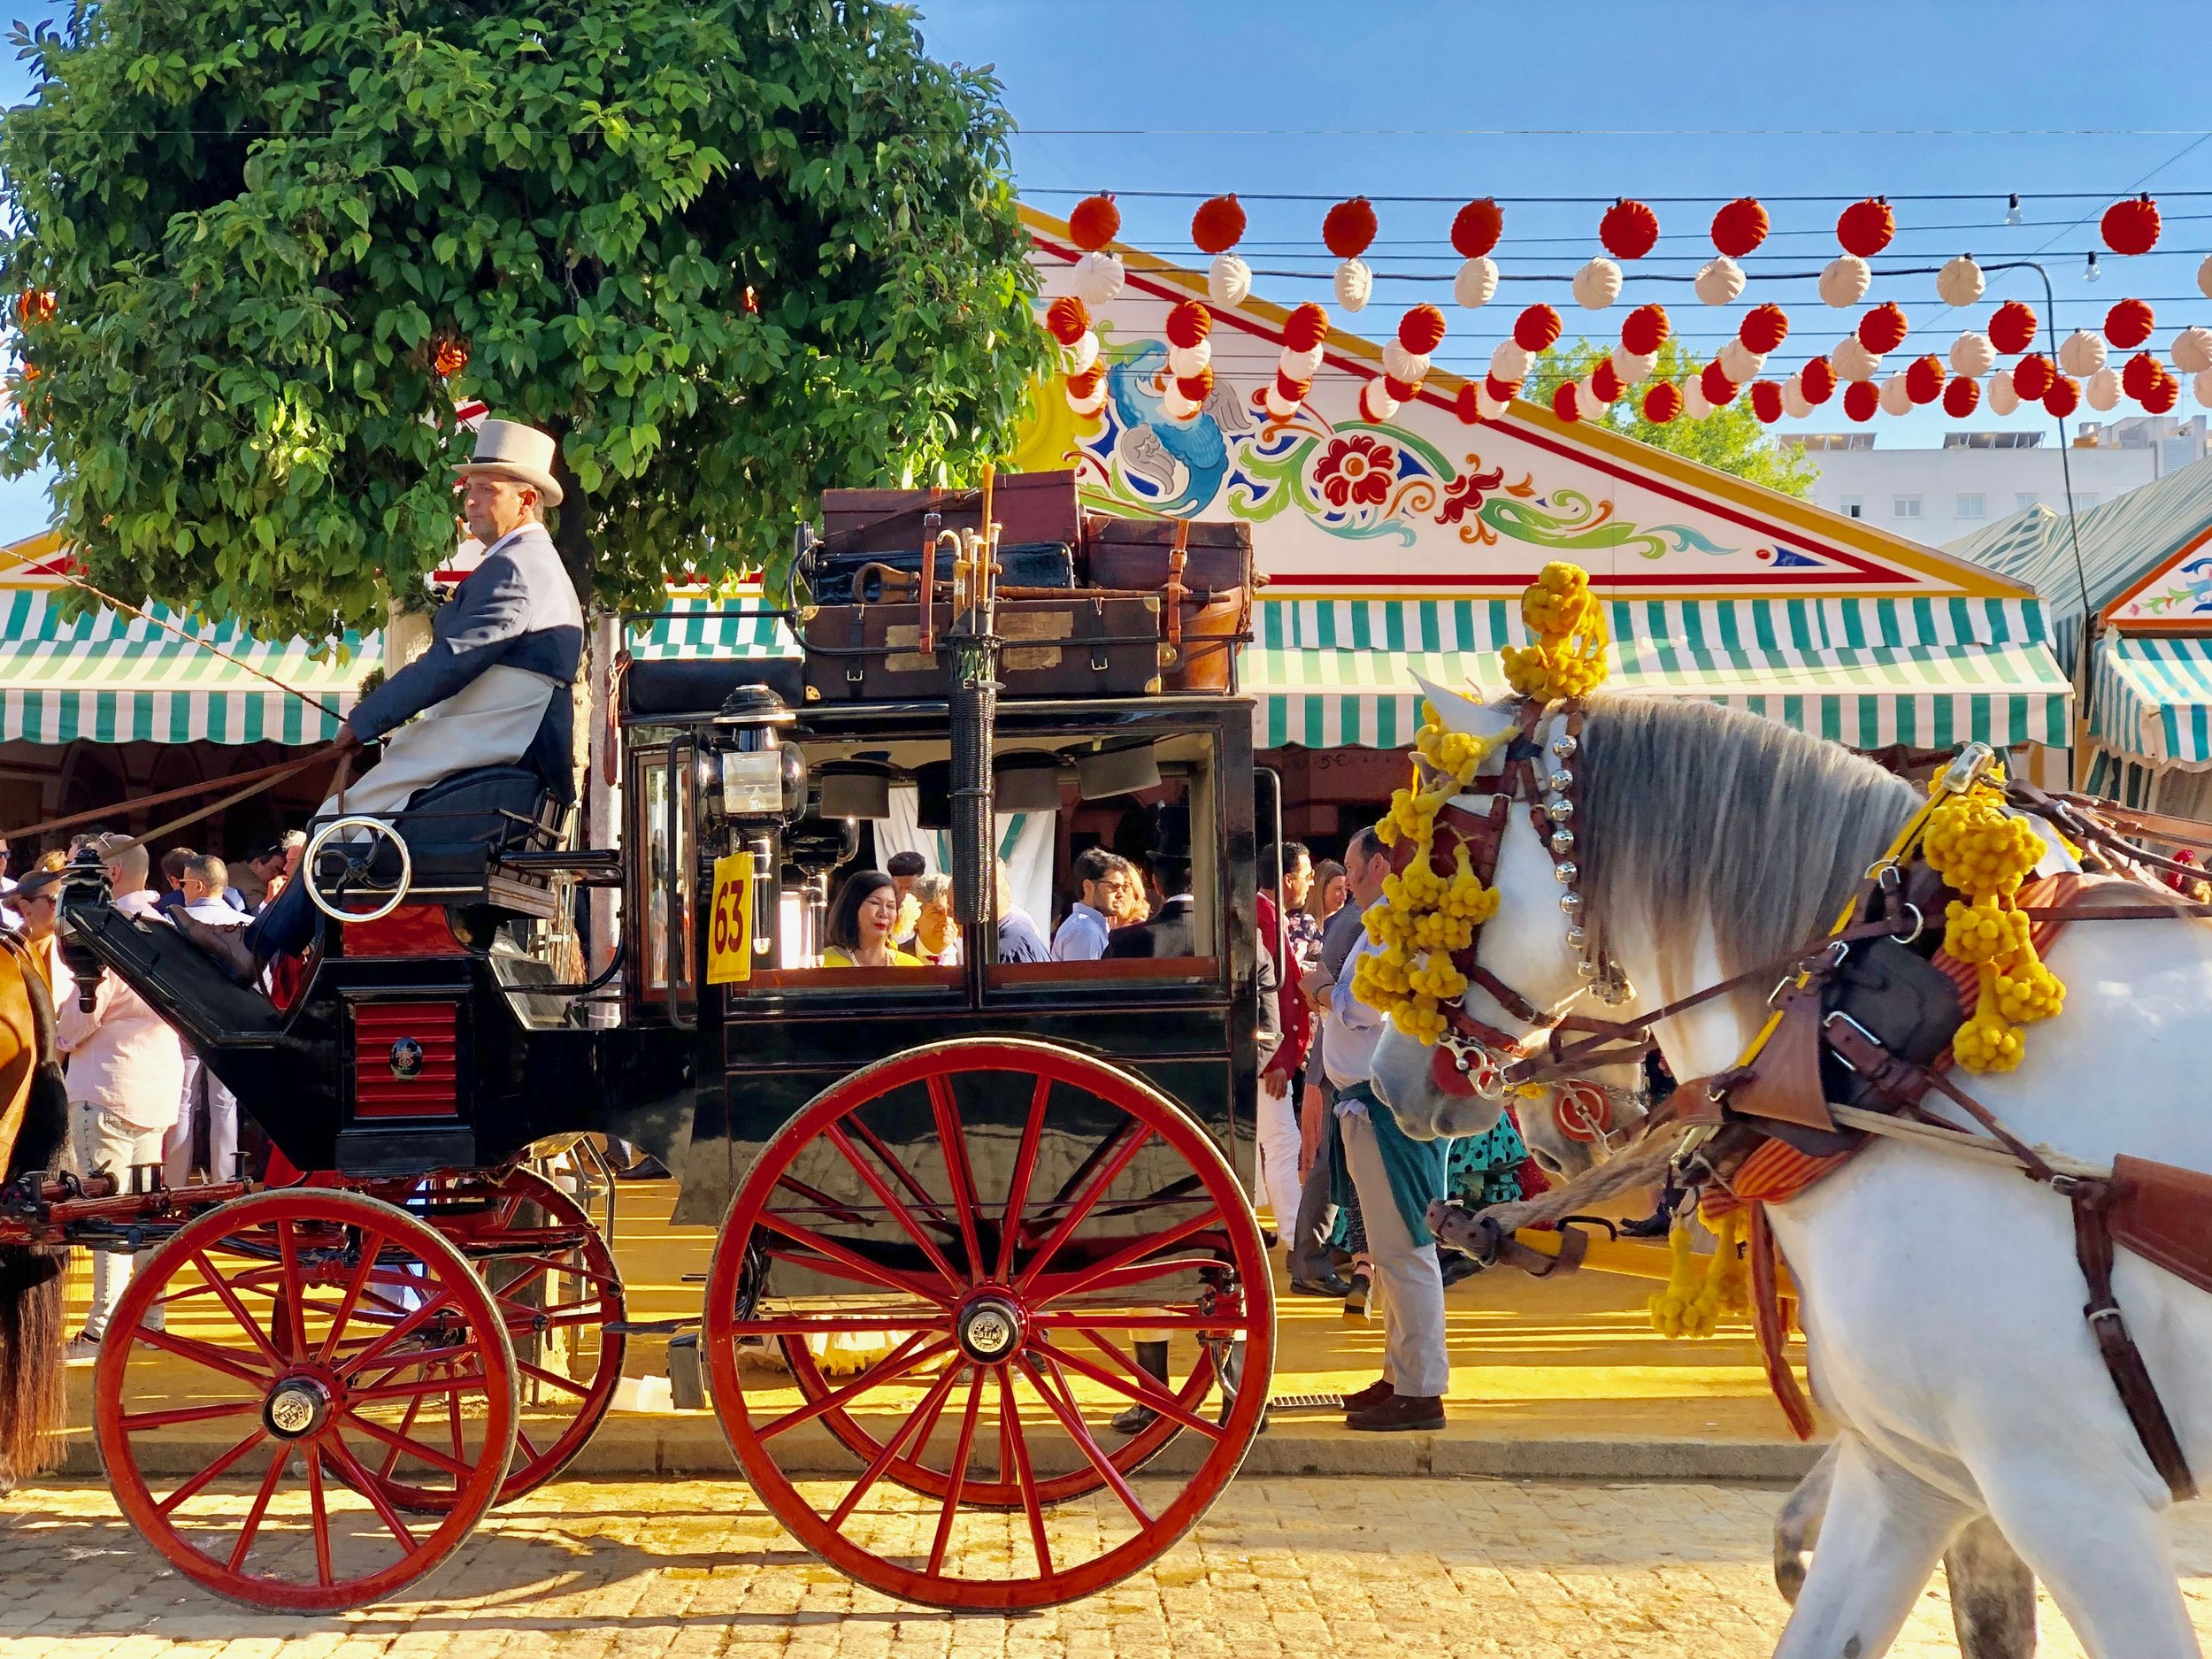 The Feria was really like stepping into another era.